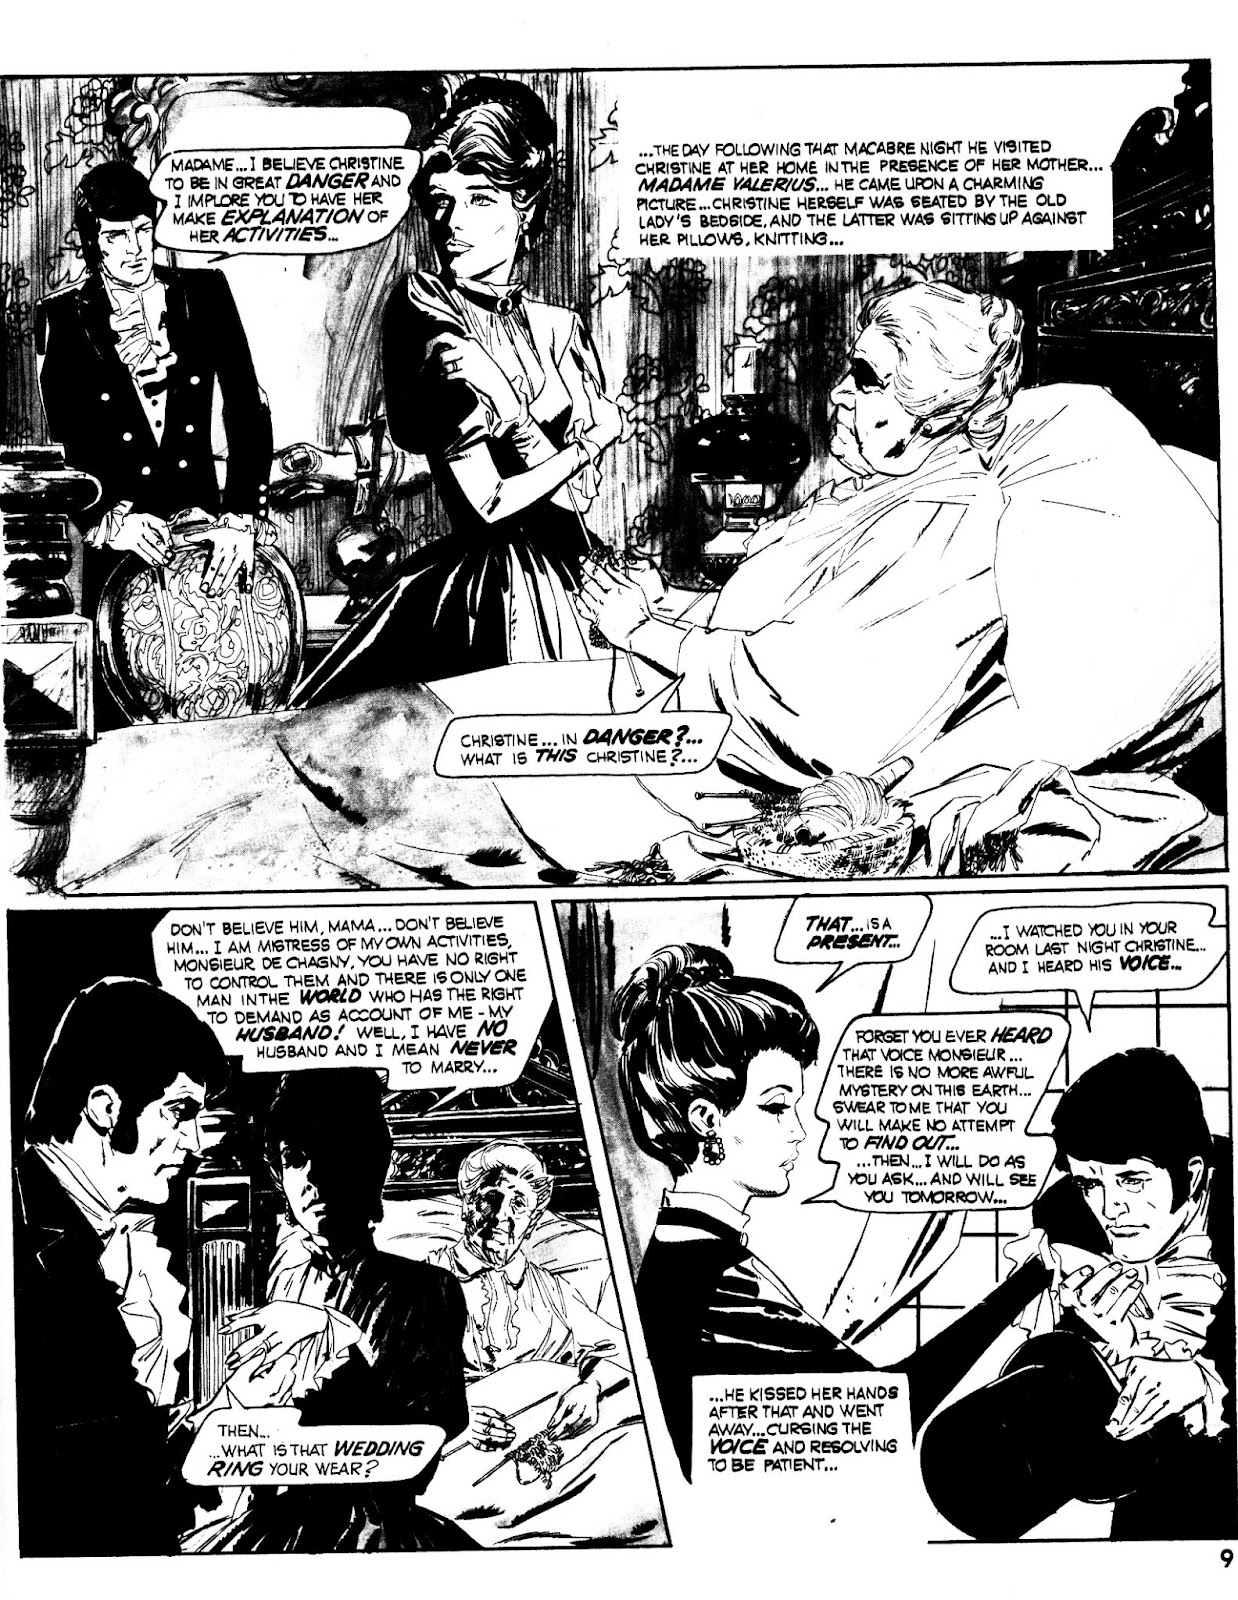 Scream (1973) issue 3 - Page 9